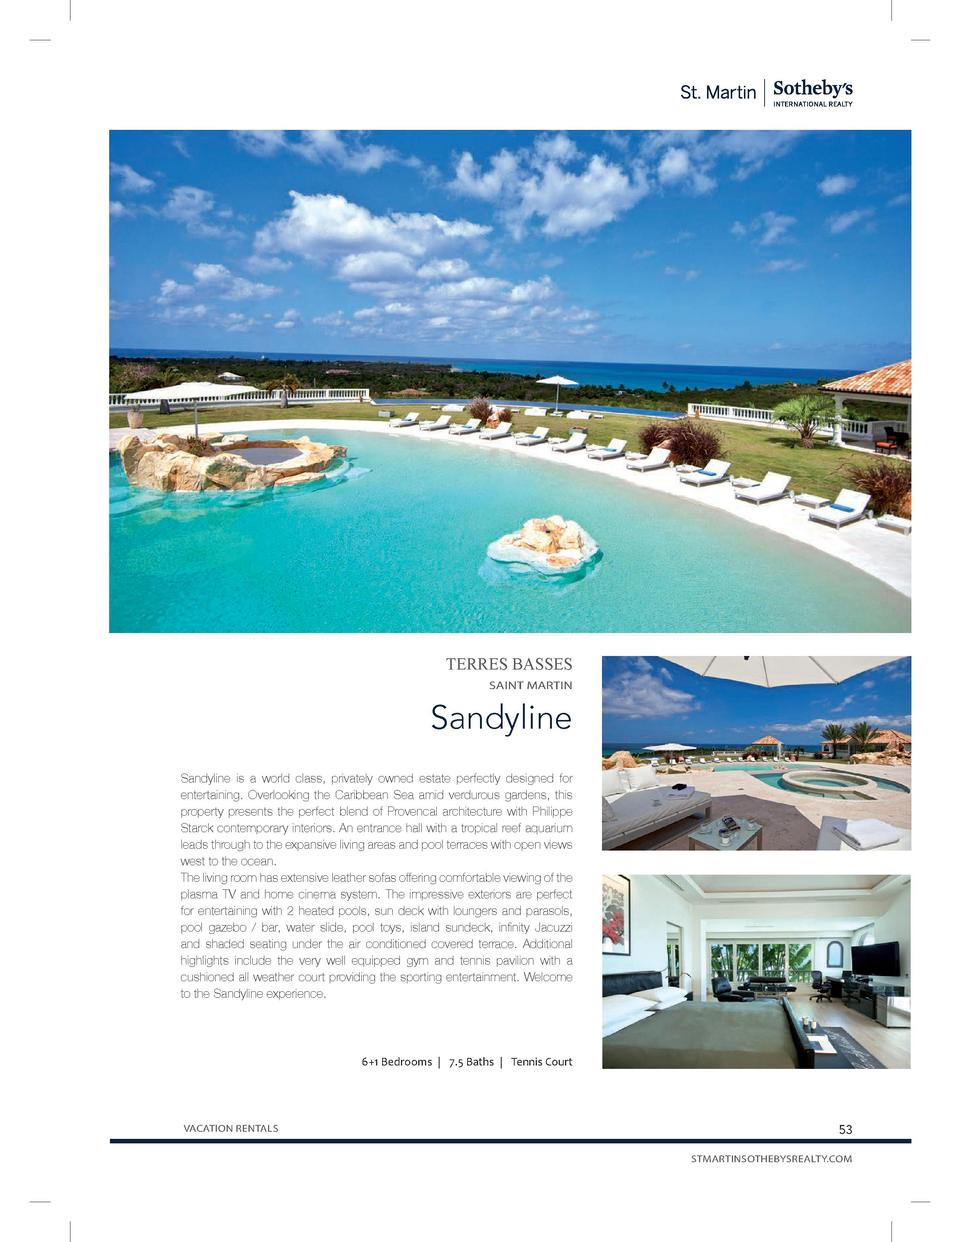 TERRES BASSES SAINT MARTIN  Sandyline Sandyline is a world class, privately owned estate perfectly designed for entertaini...